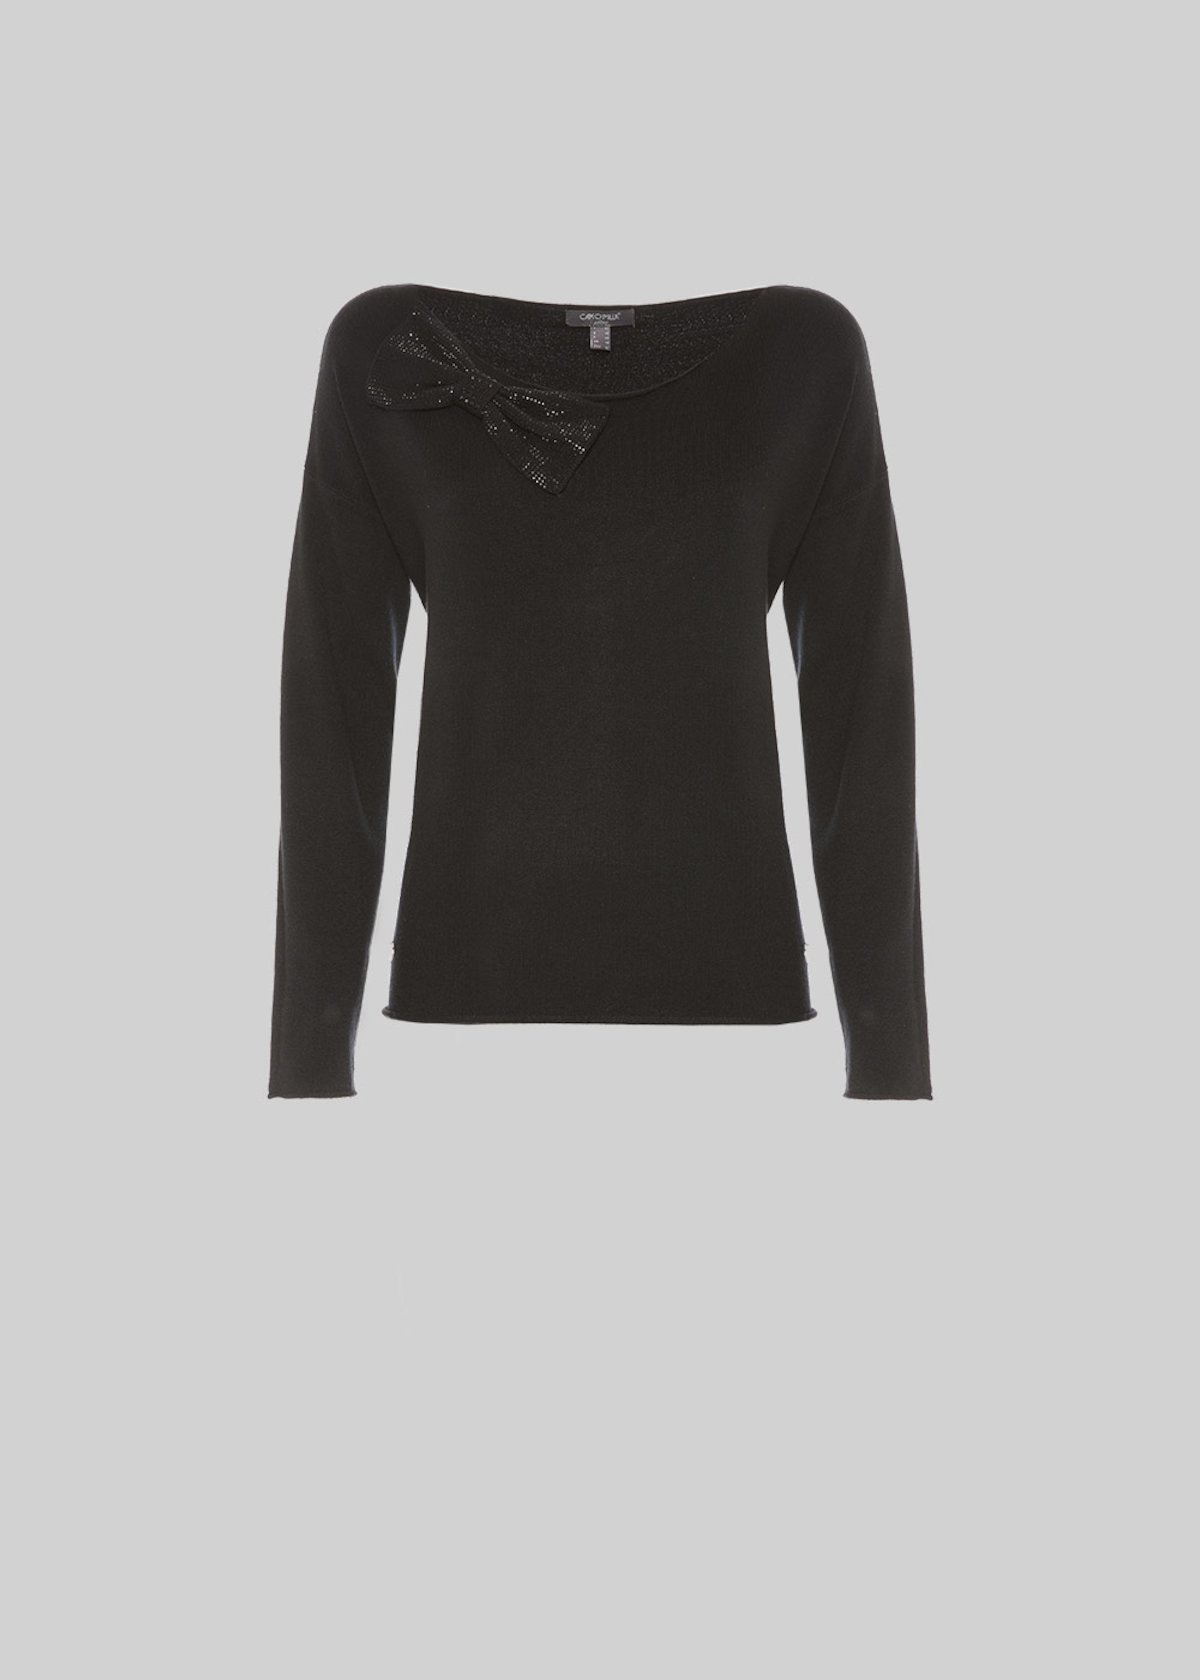 Maily sweater with bow and crystal details - Black